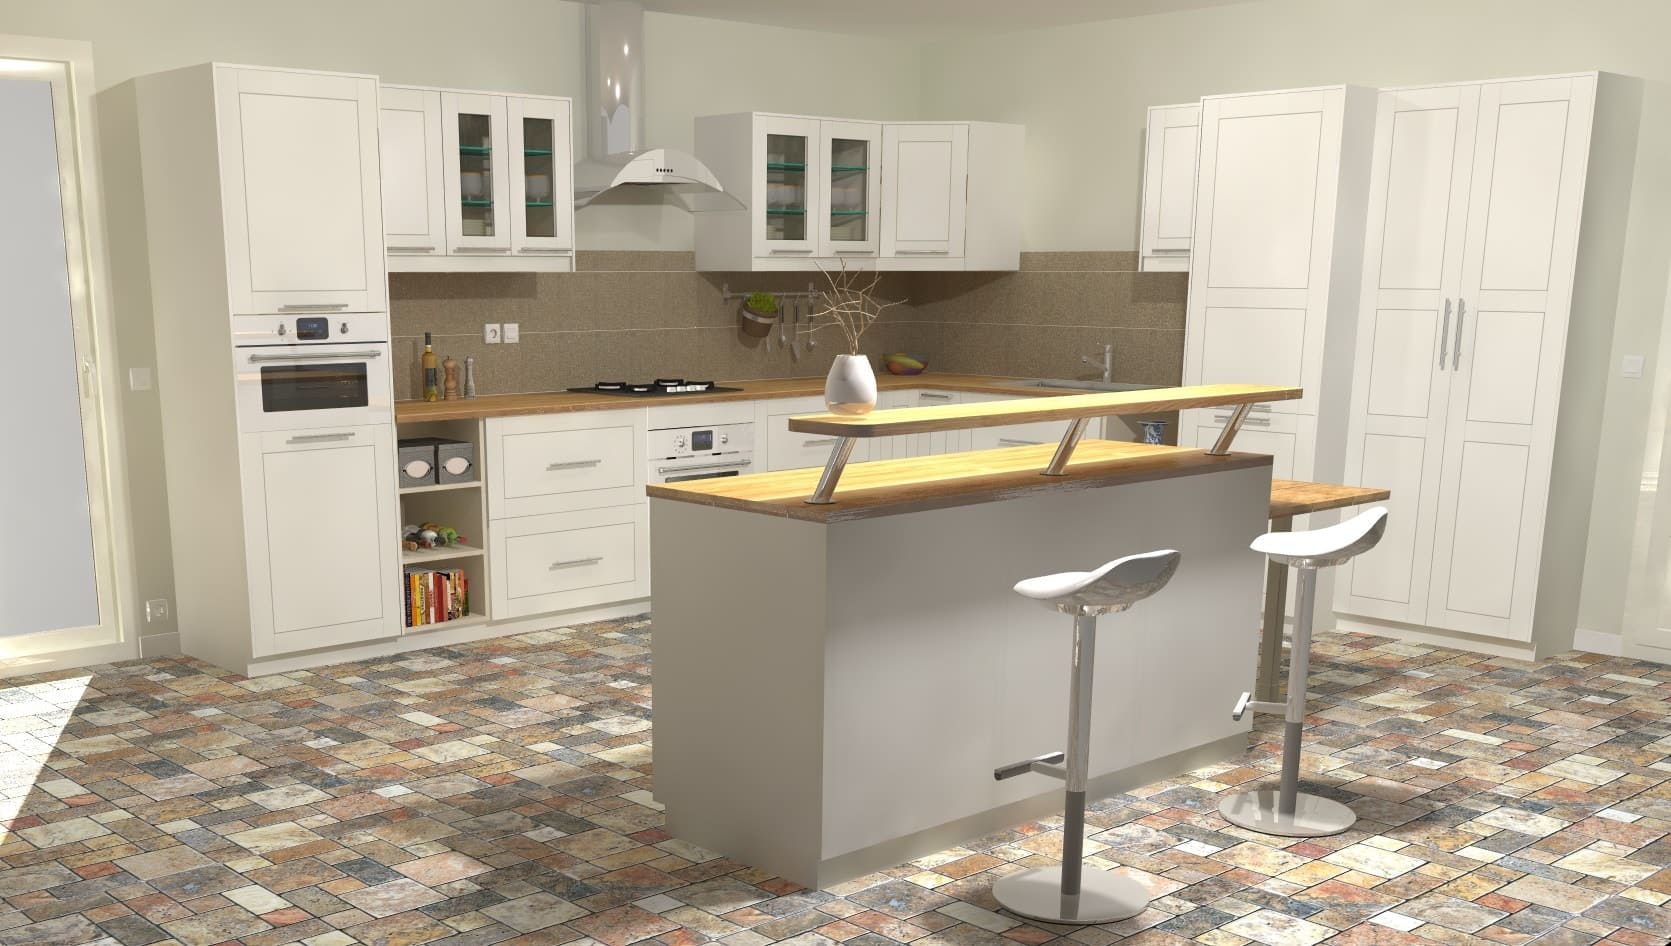 Dynamique Agencement 3d Kitchen Software